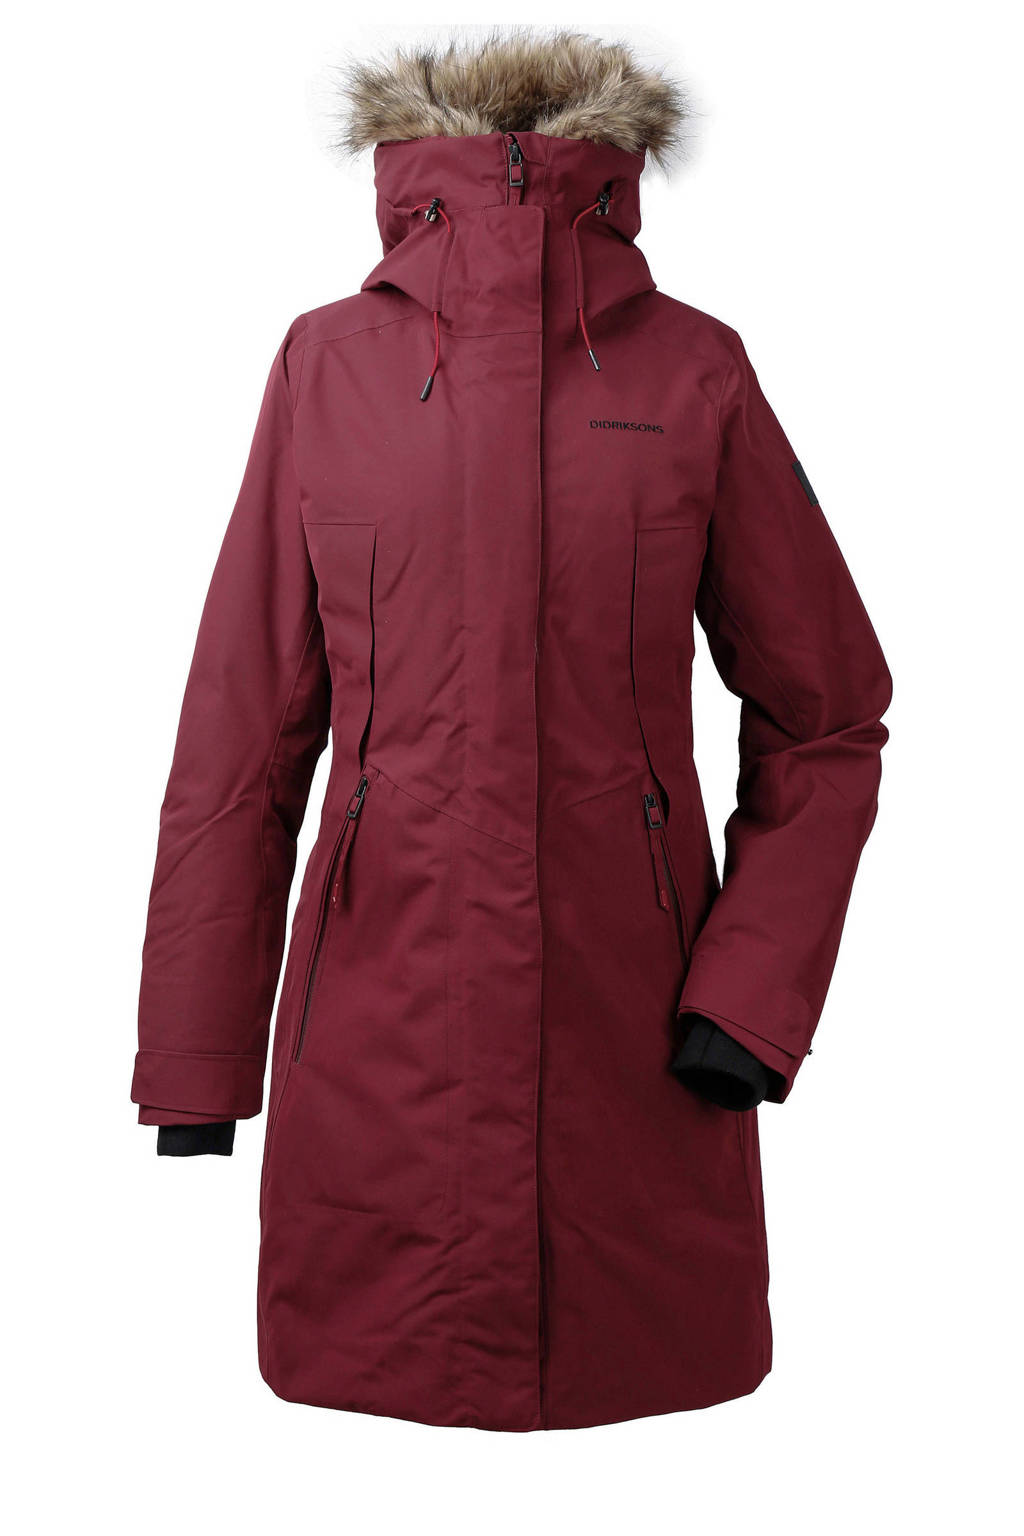 Didriksons parka Mea donkerrood, Anemon-Red